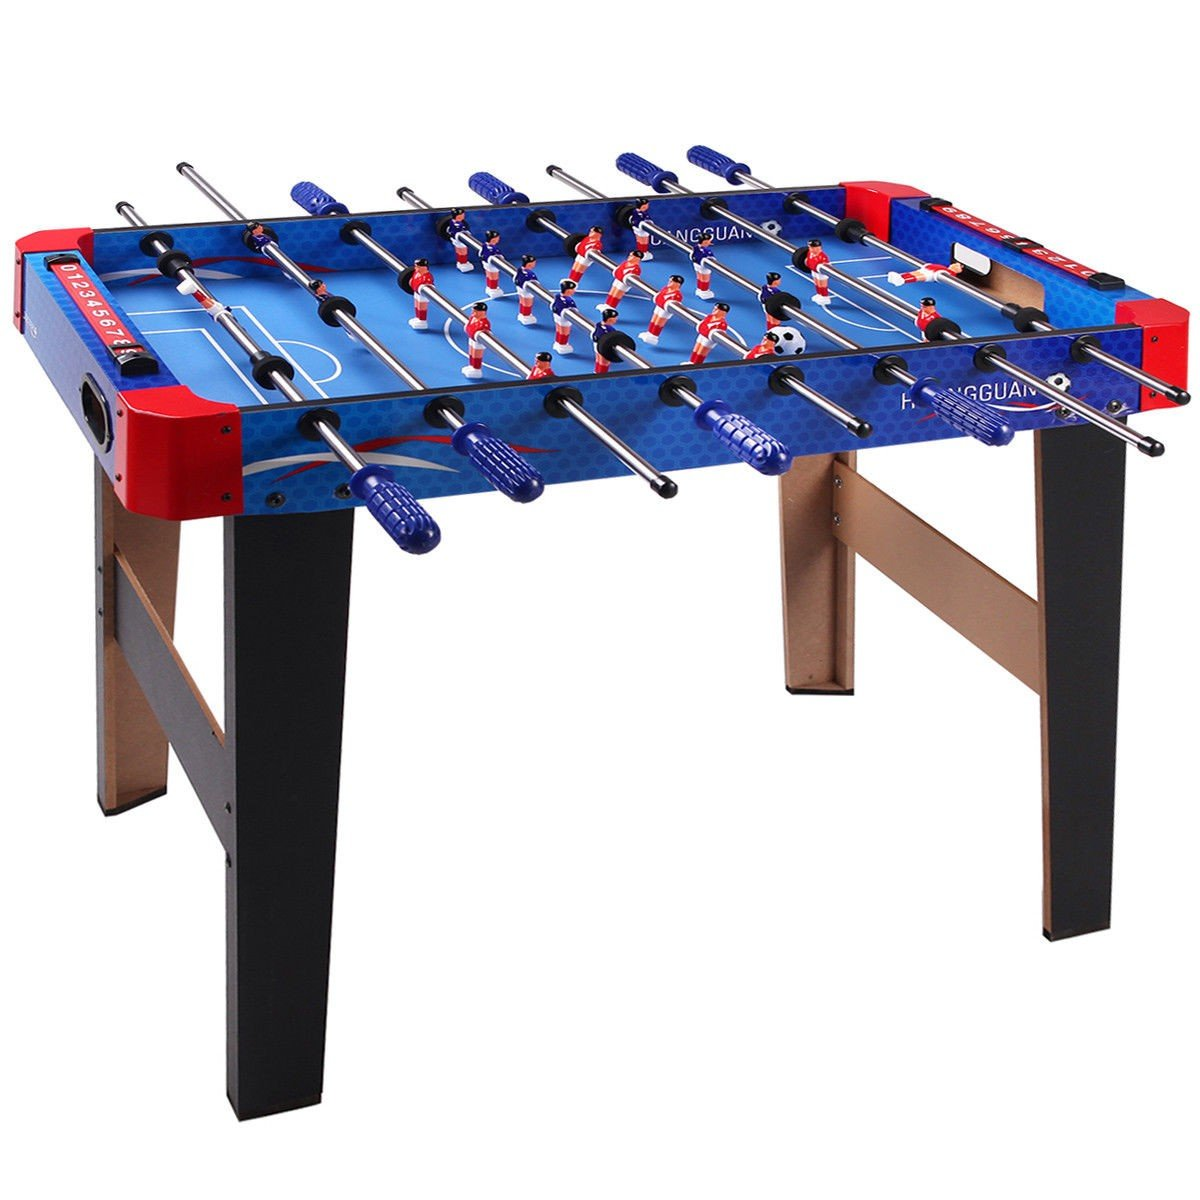 COSTWAY 36'' Indoor Arcade Game Foosball Table by Allgoodsdelight365